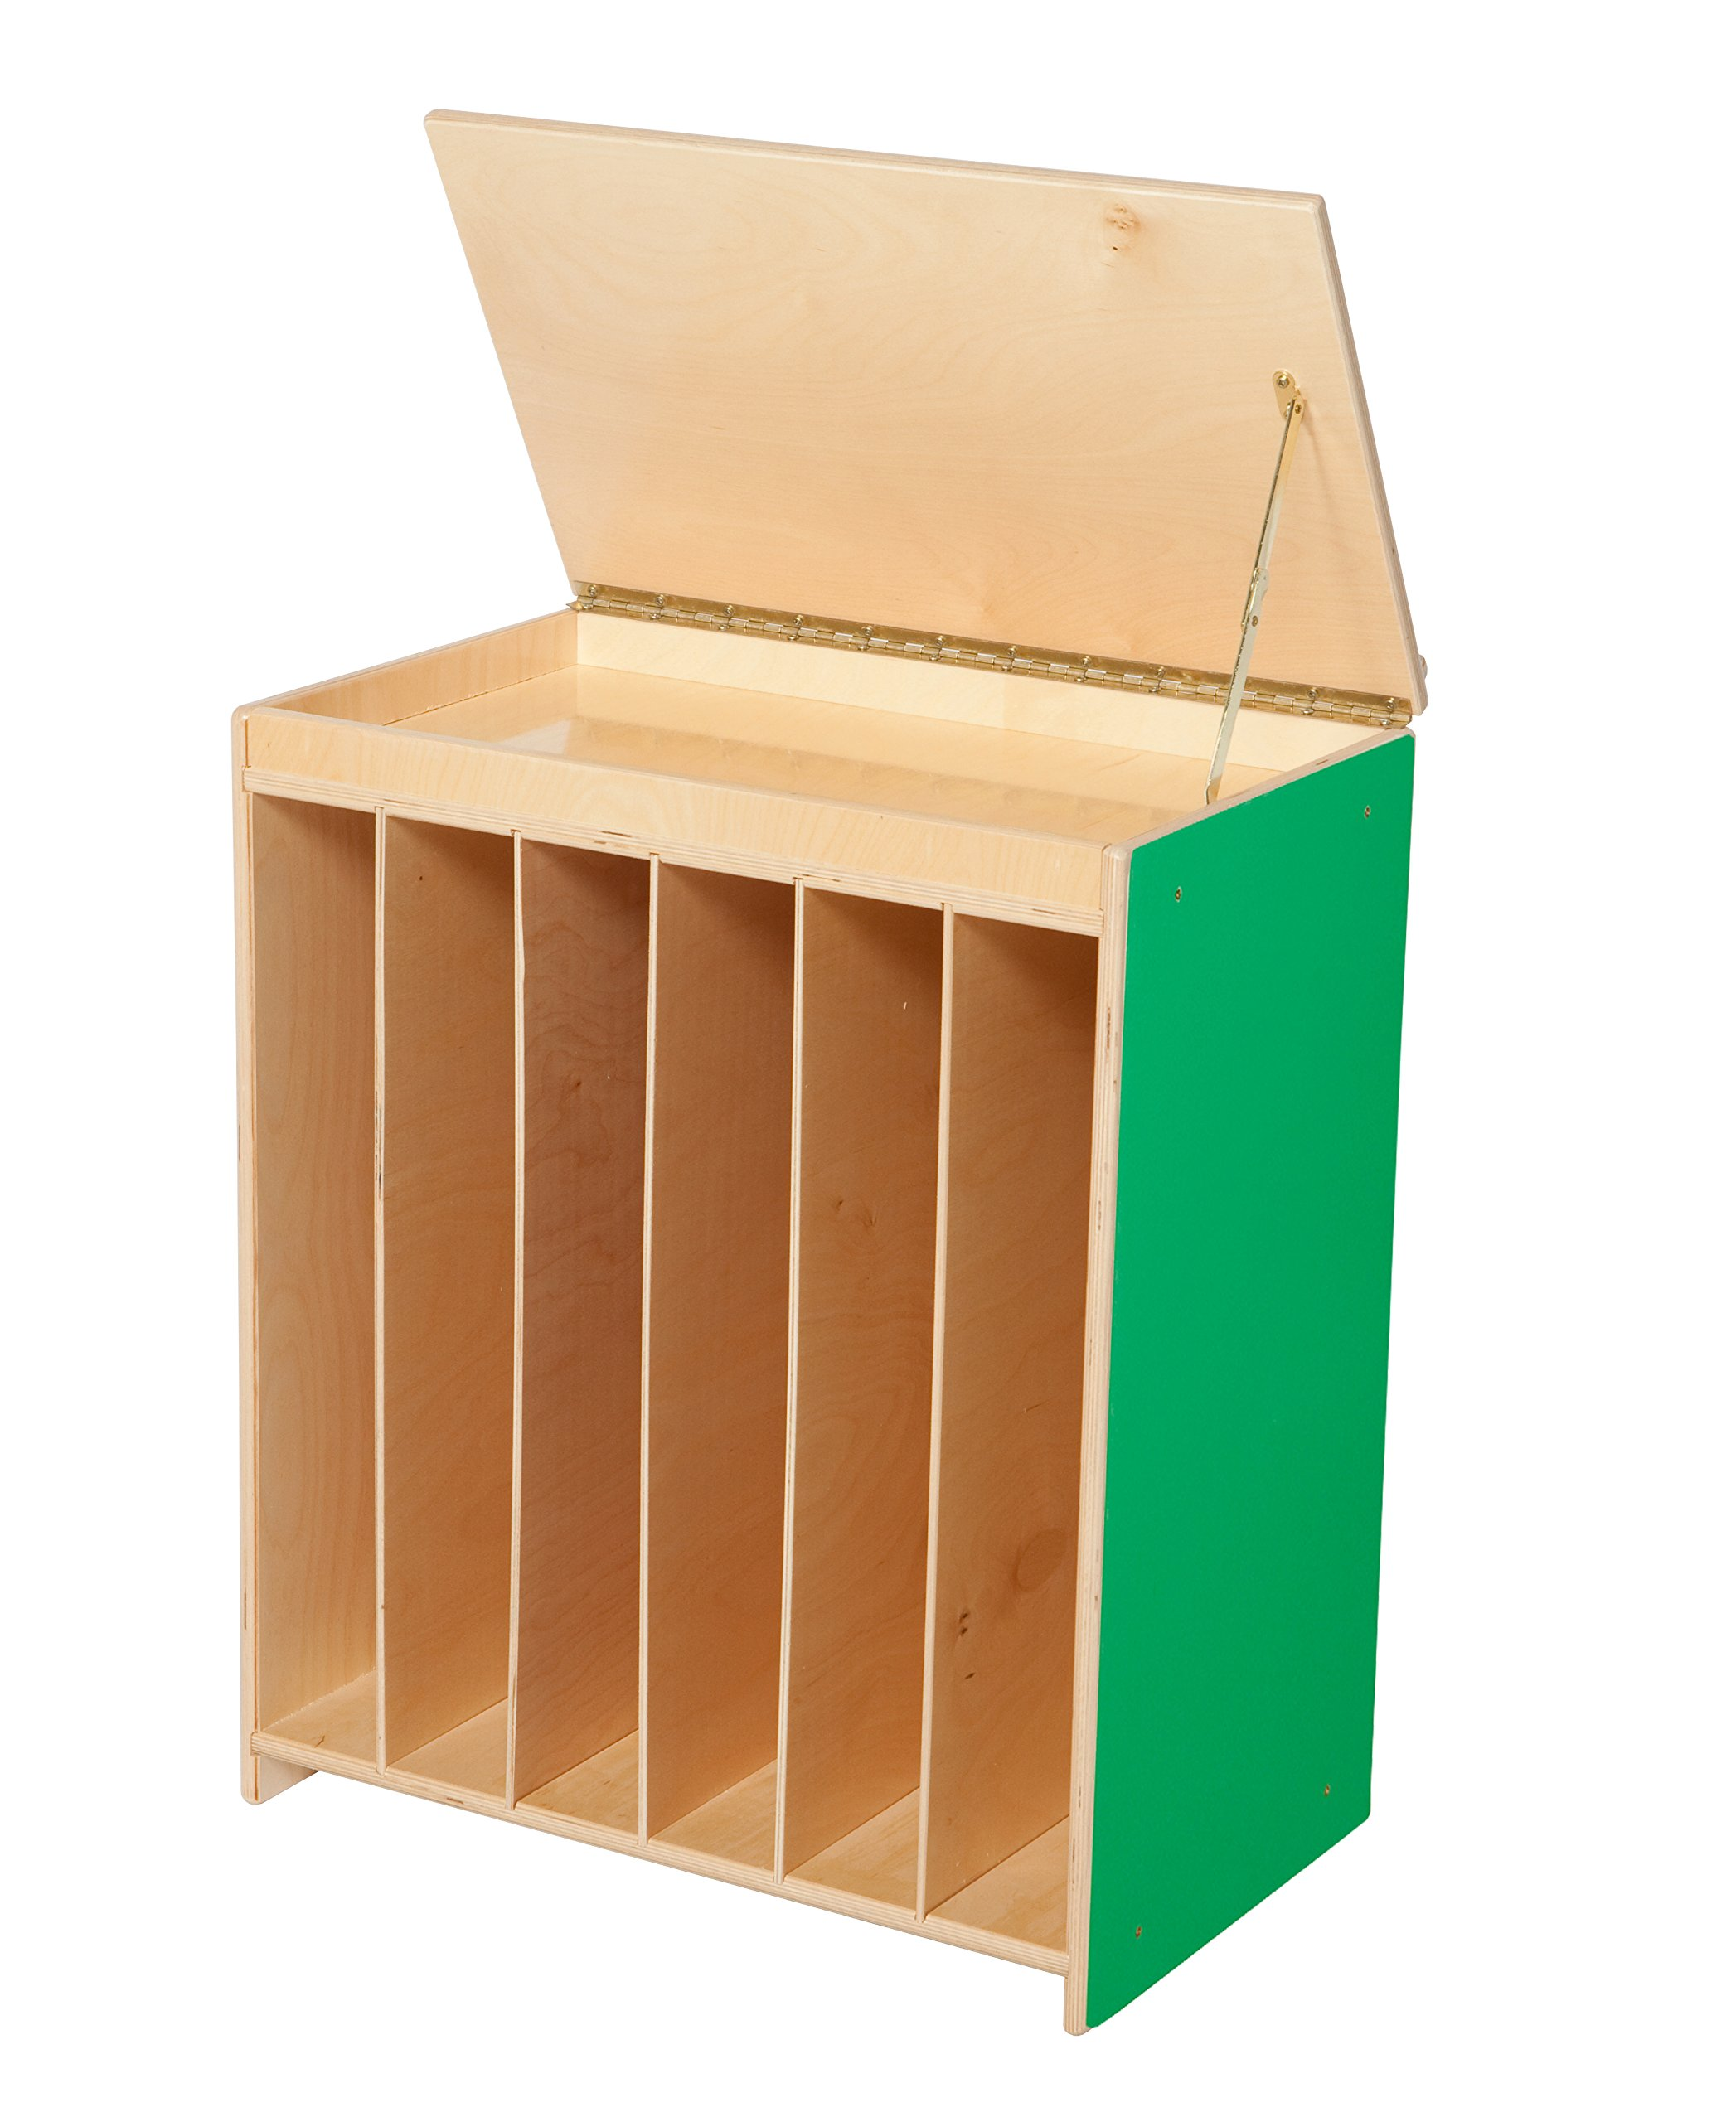 Wood Designs 44100G Green Apple Big Book Display with Flannel, 28'' Height, 18'' Width, 26.5'' Length